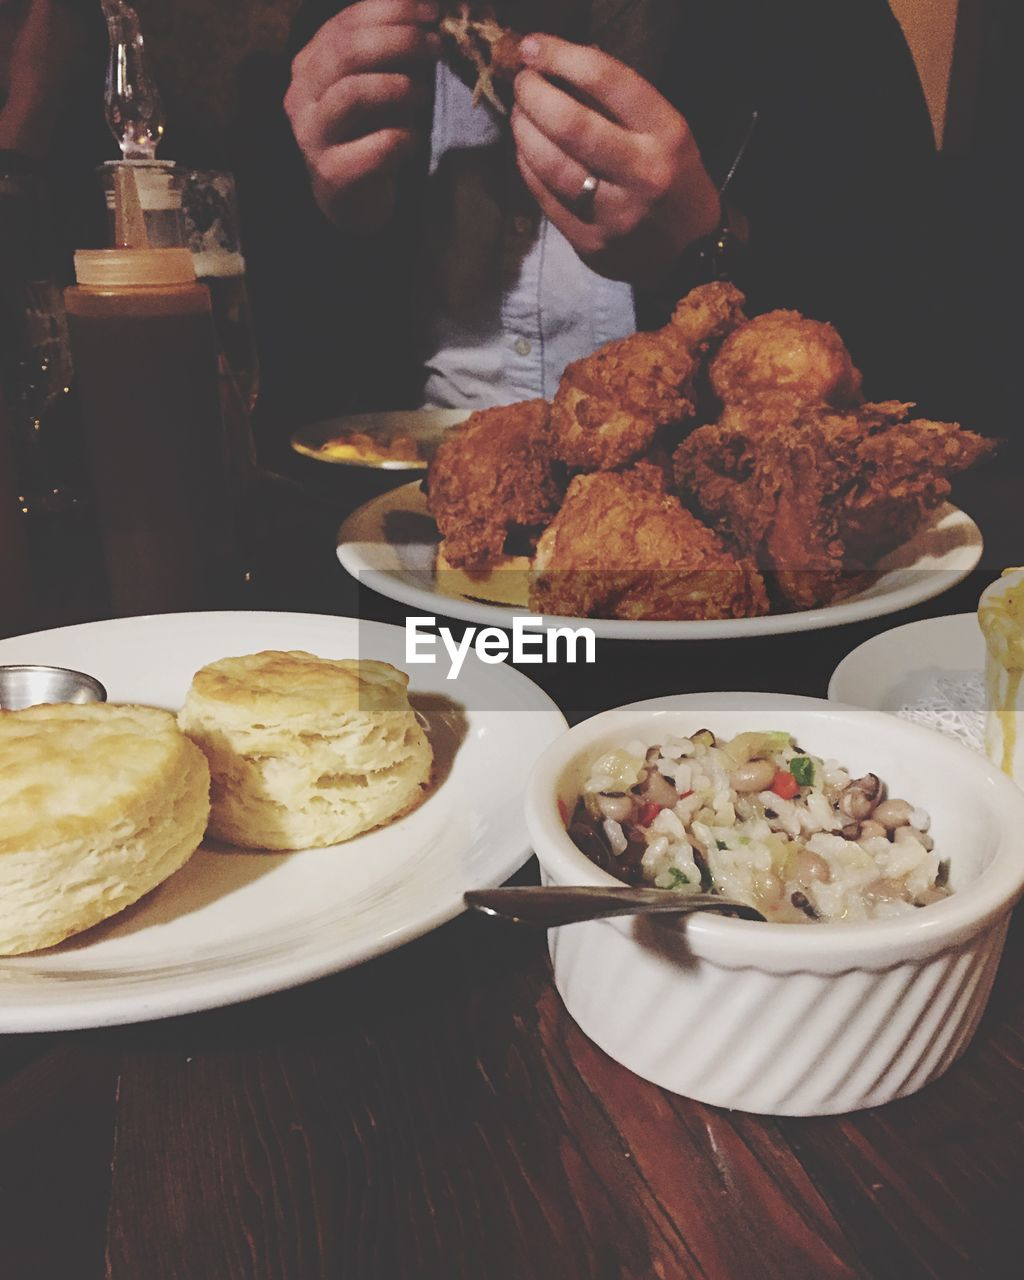 food and drink, food, plate, table, serving size, freshness, ready-to-eat, indoors, meal, one person, real people, gourmet, human hand, close-up, day, people